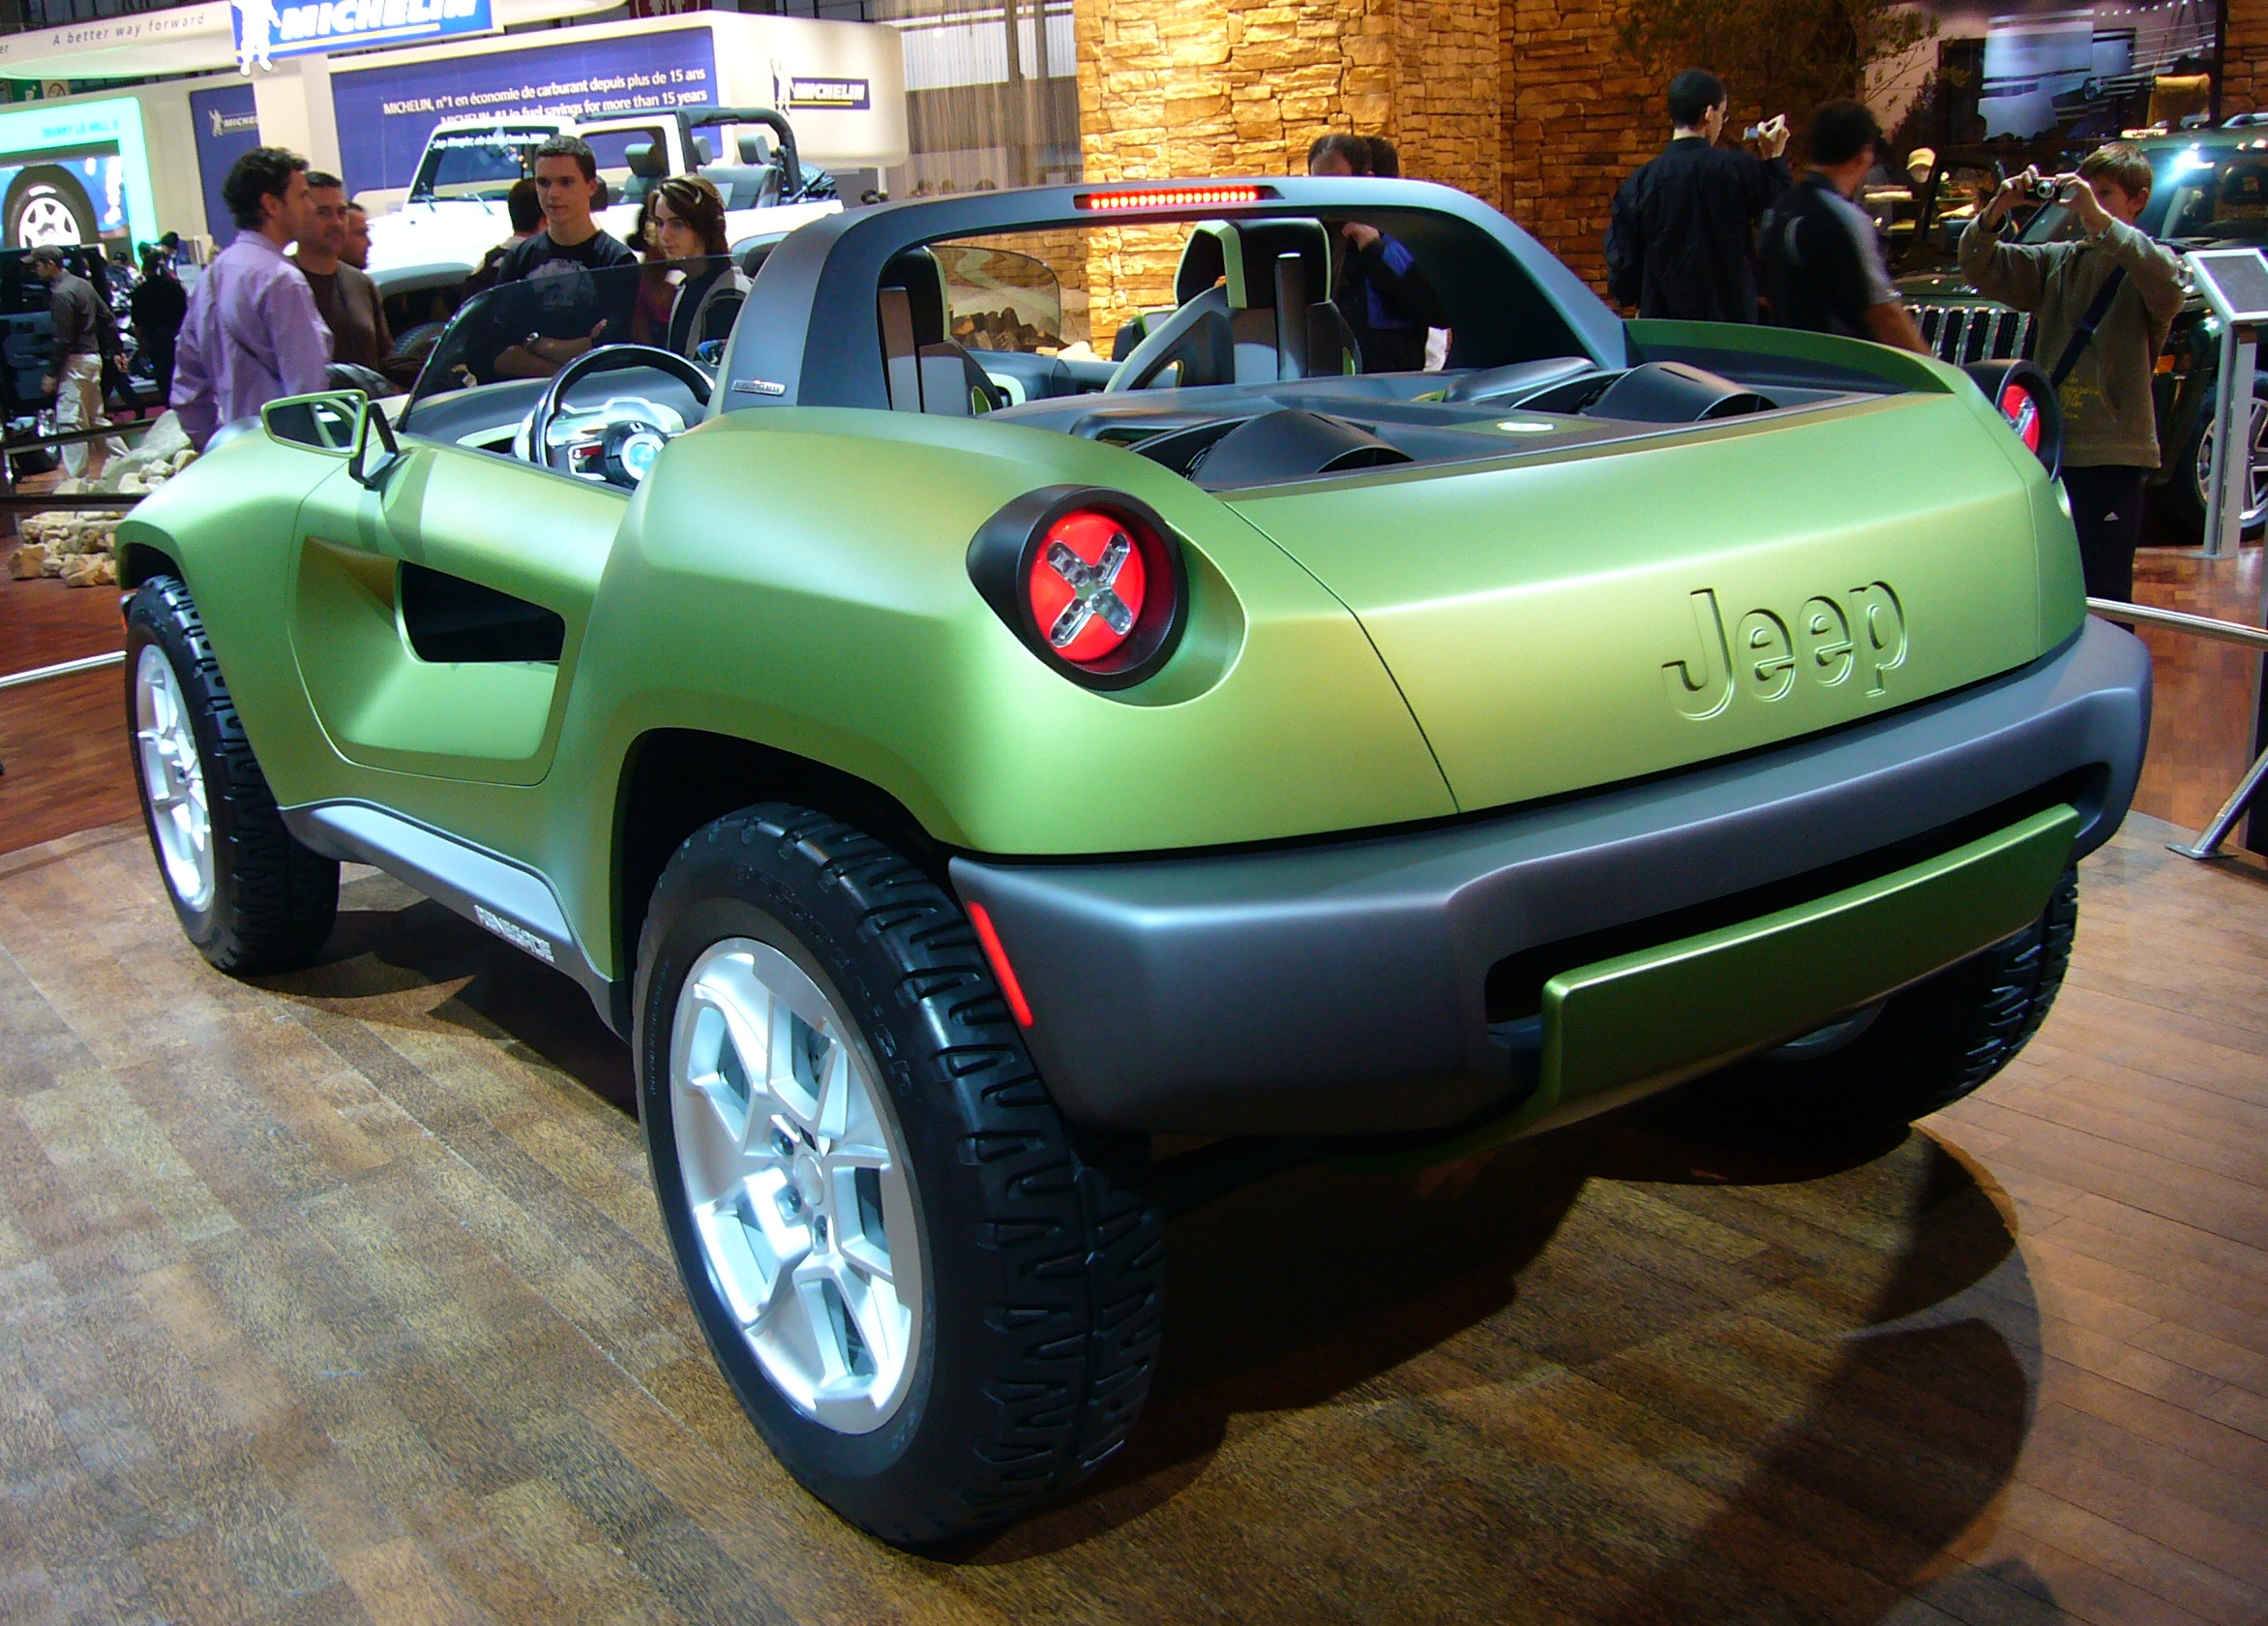 file jeep renegade concept rear quarter jpg wikimedia commons. Black Bedroom Furniture Sets. Home Design Ideas